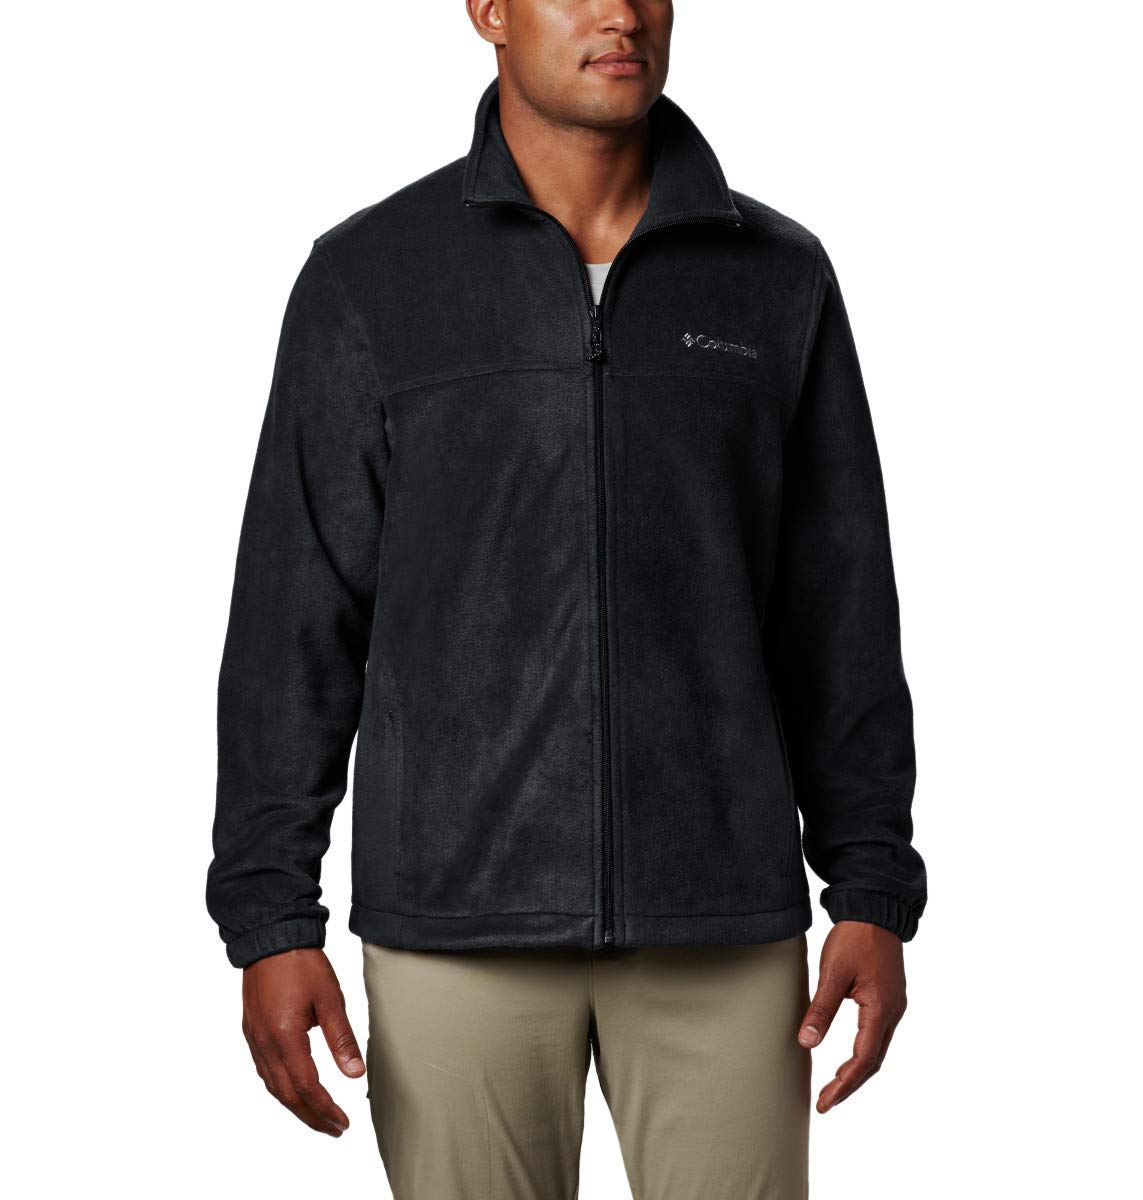 Columbia Men's Steens Mountain Full Zip 2.0, Soft Fleece with Classic Fit by Columbia